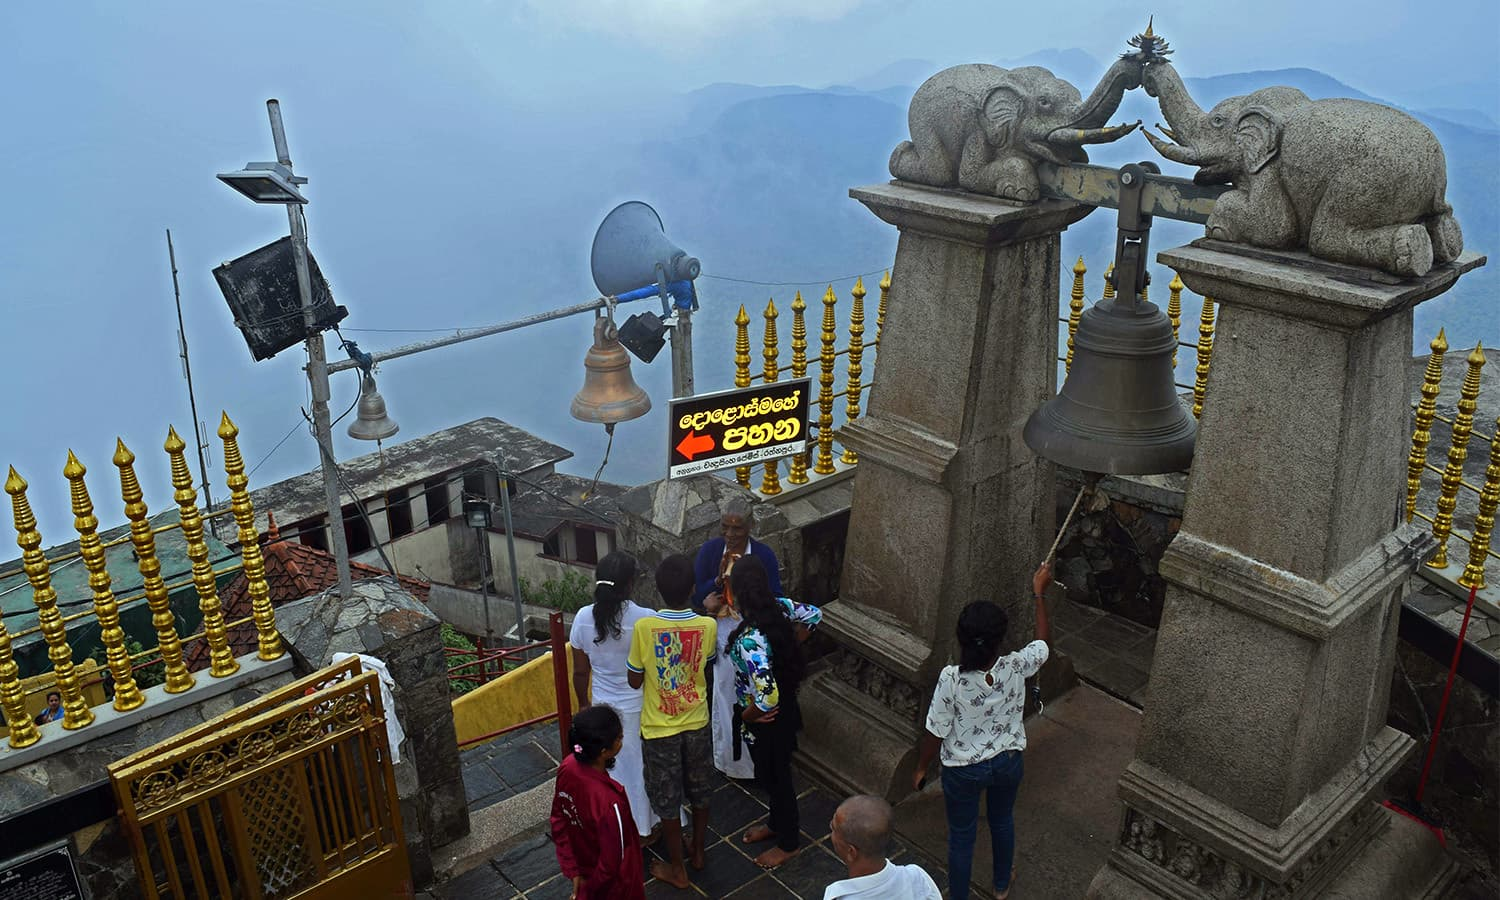 The bells fixed closer to the holy footprint rung by Buddhist pilgrims once they reach the summit. ─Photo by the author